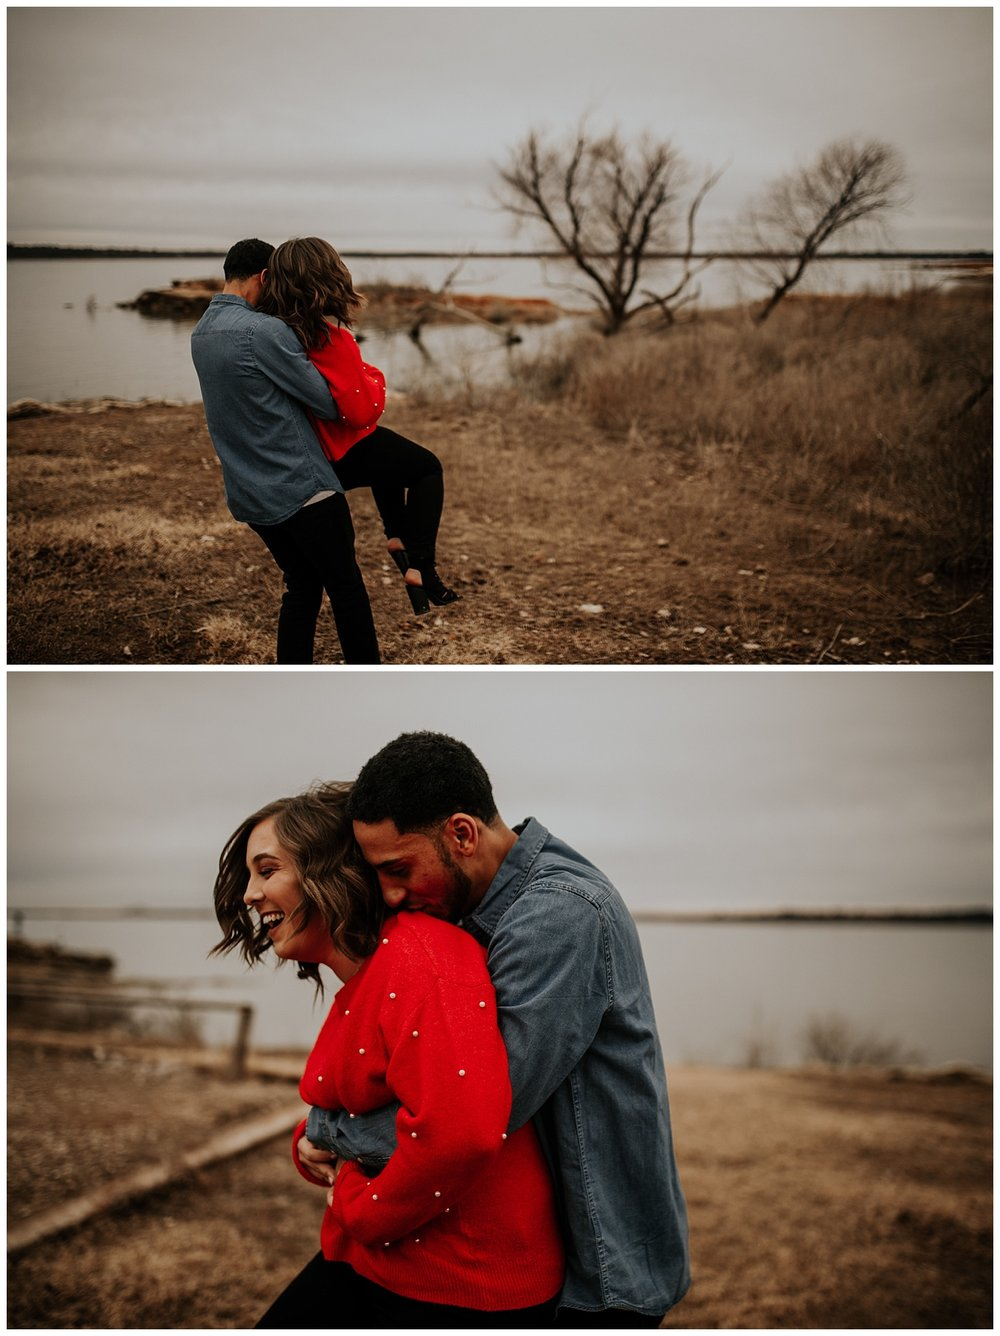 Laken-Mackenzie-Photography-Grapevine-Engagement-Fort-Worth-Photographer04.jpg